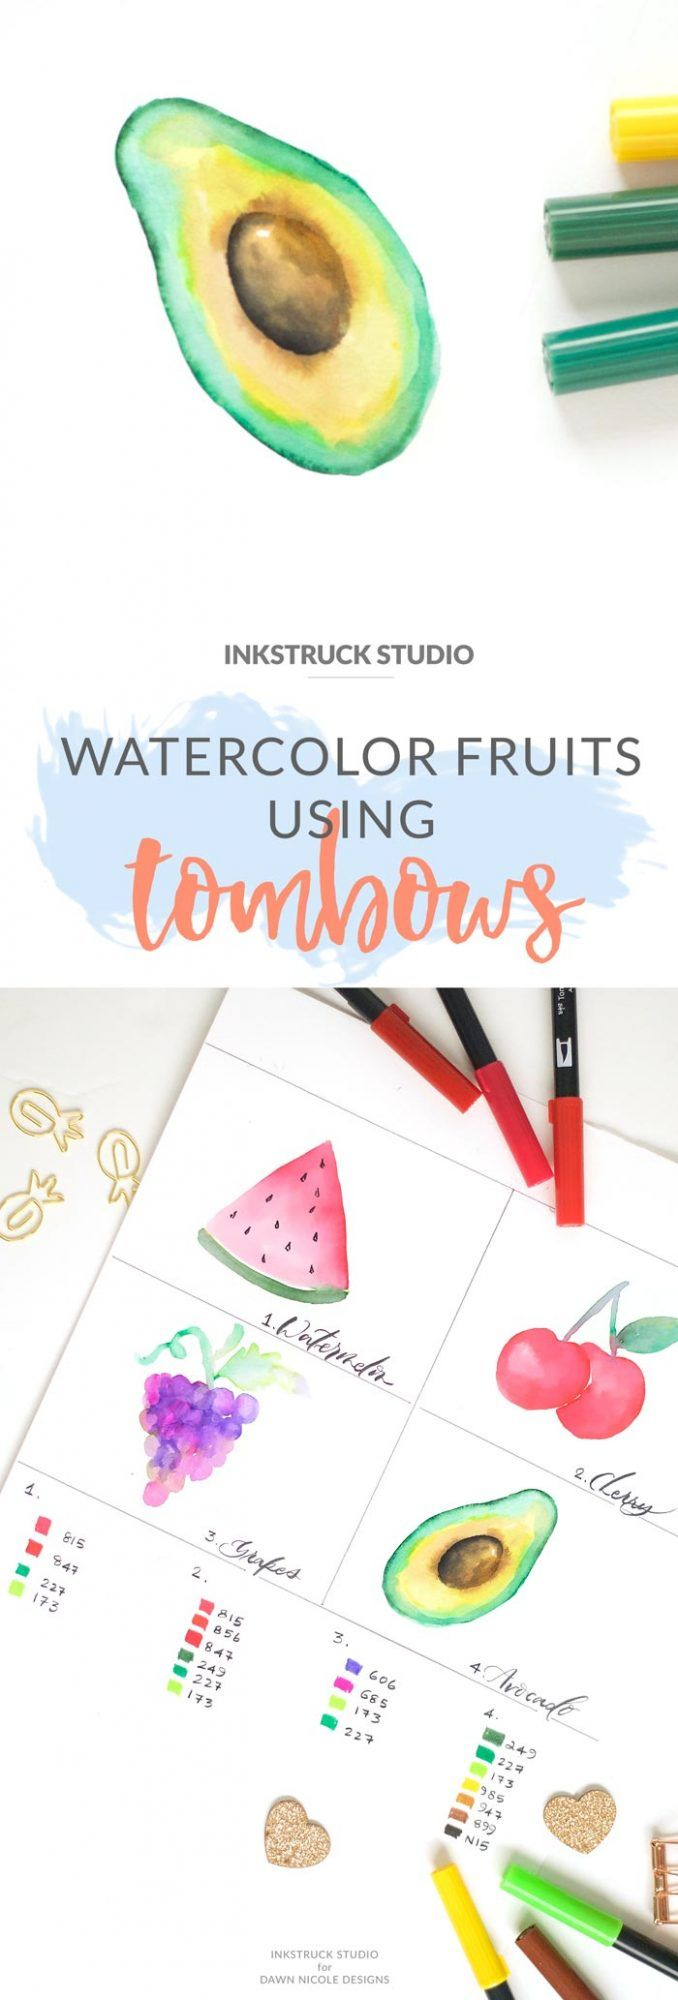 pen and watercolor tutorial